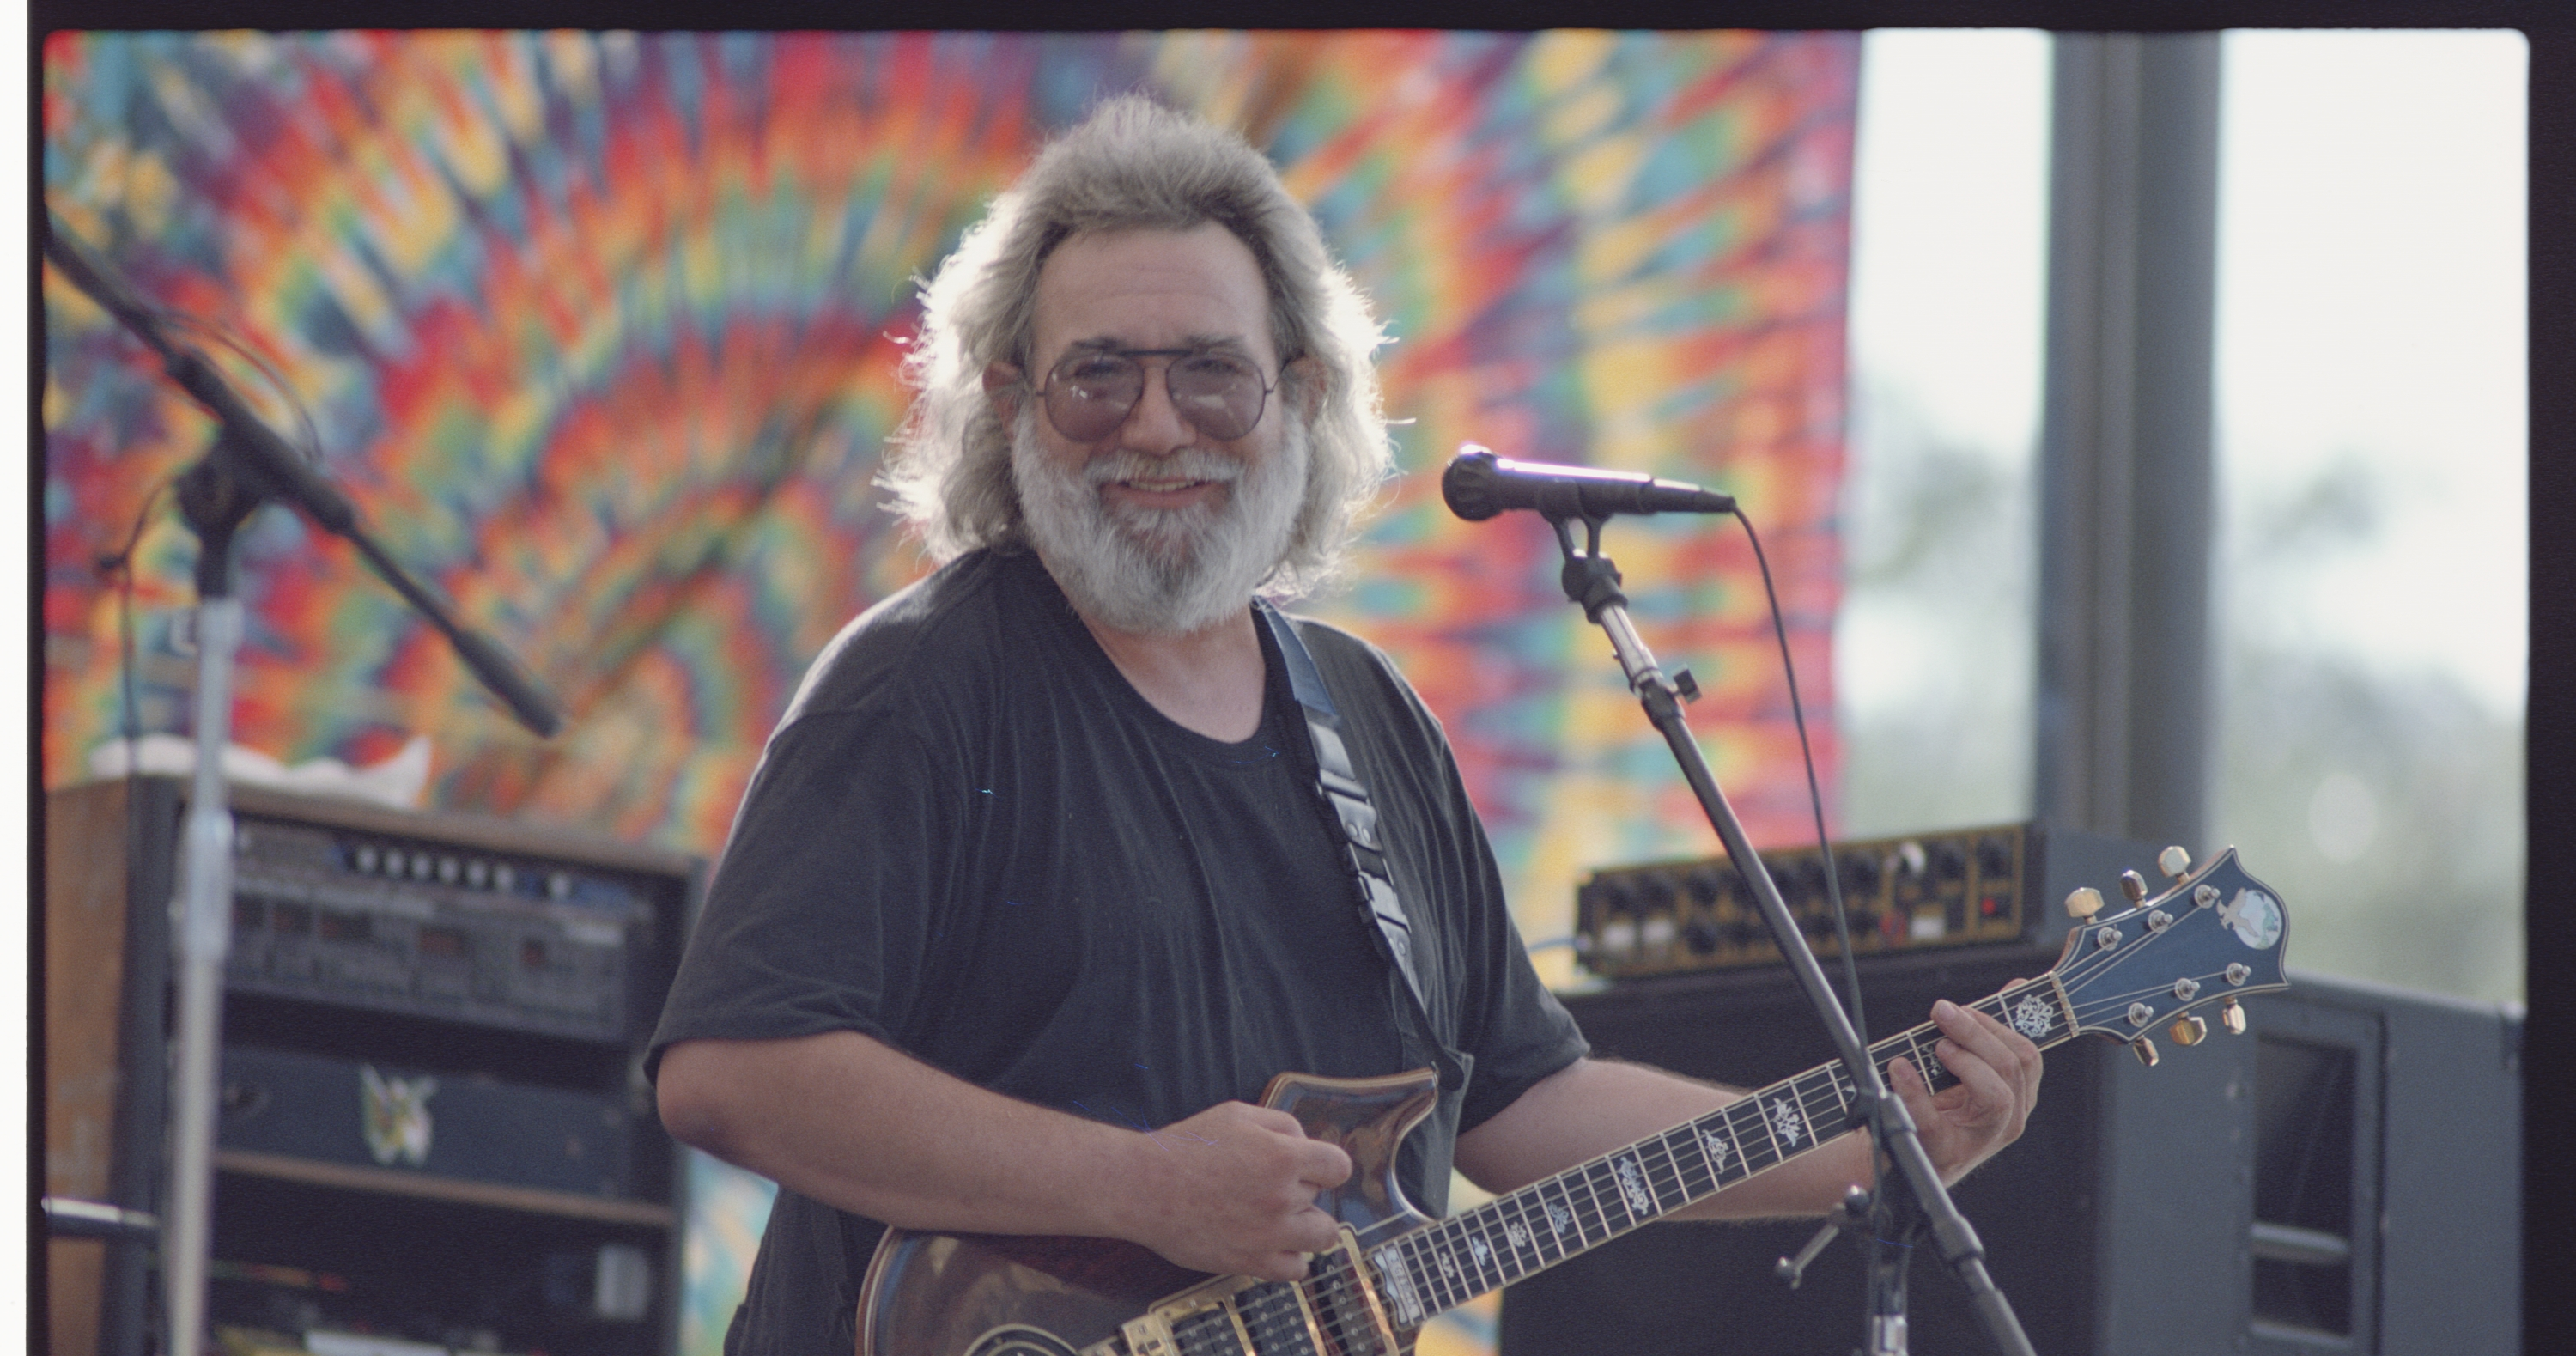 2b04389d [UPDATED] Jerry Garcia Band 'Electric On The Eel' Box Set Due In March